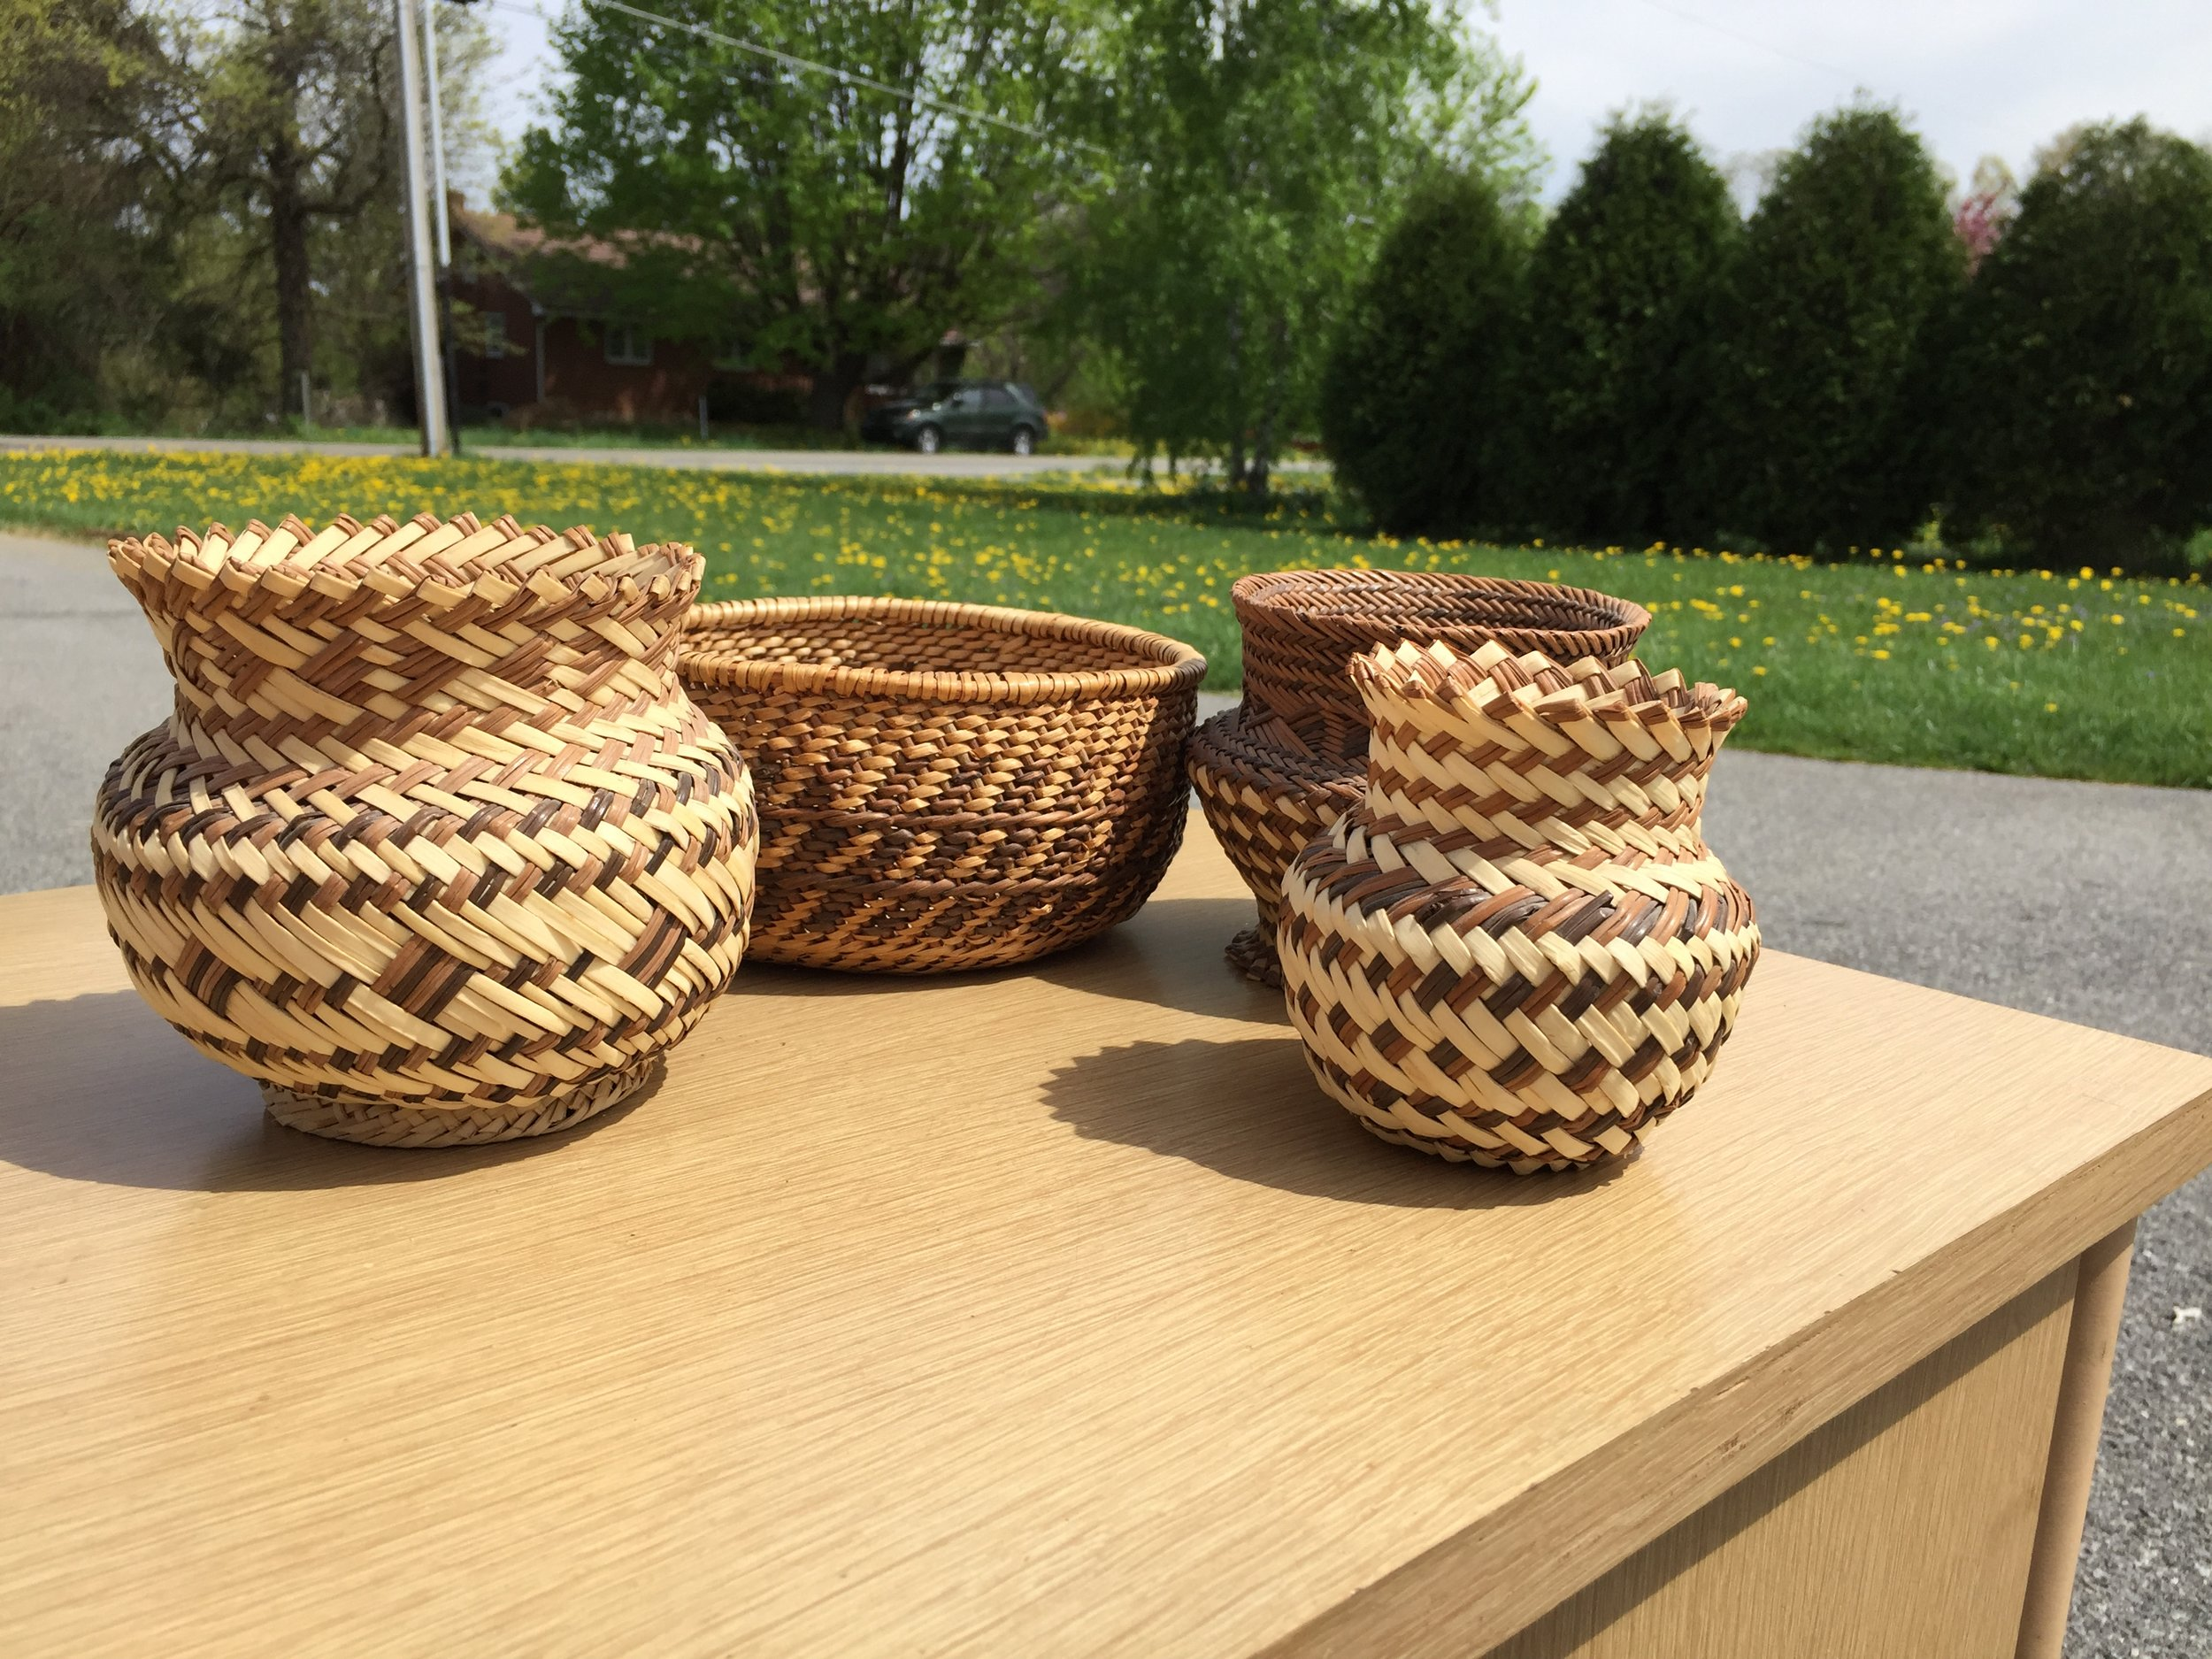 Great little set of hand woven reed baskets.